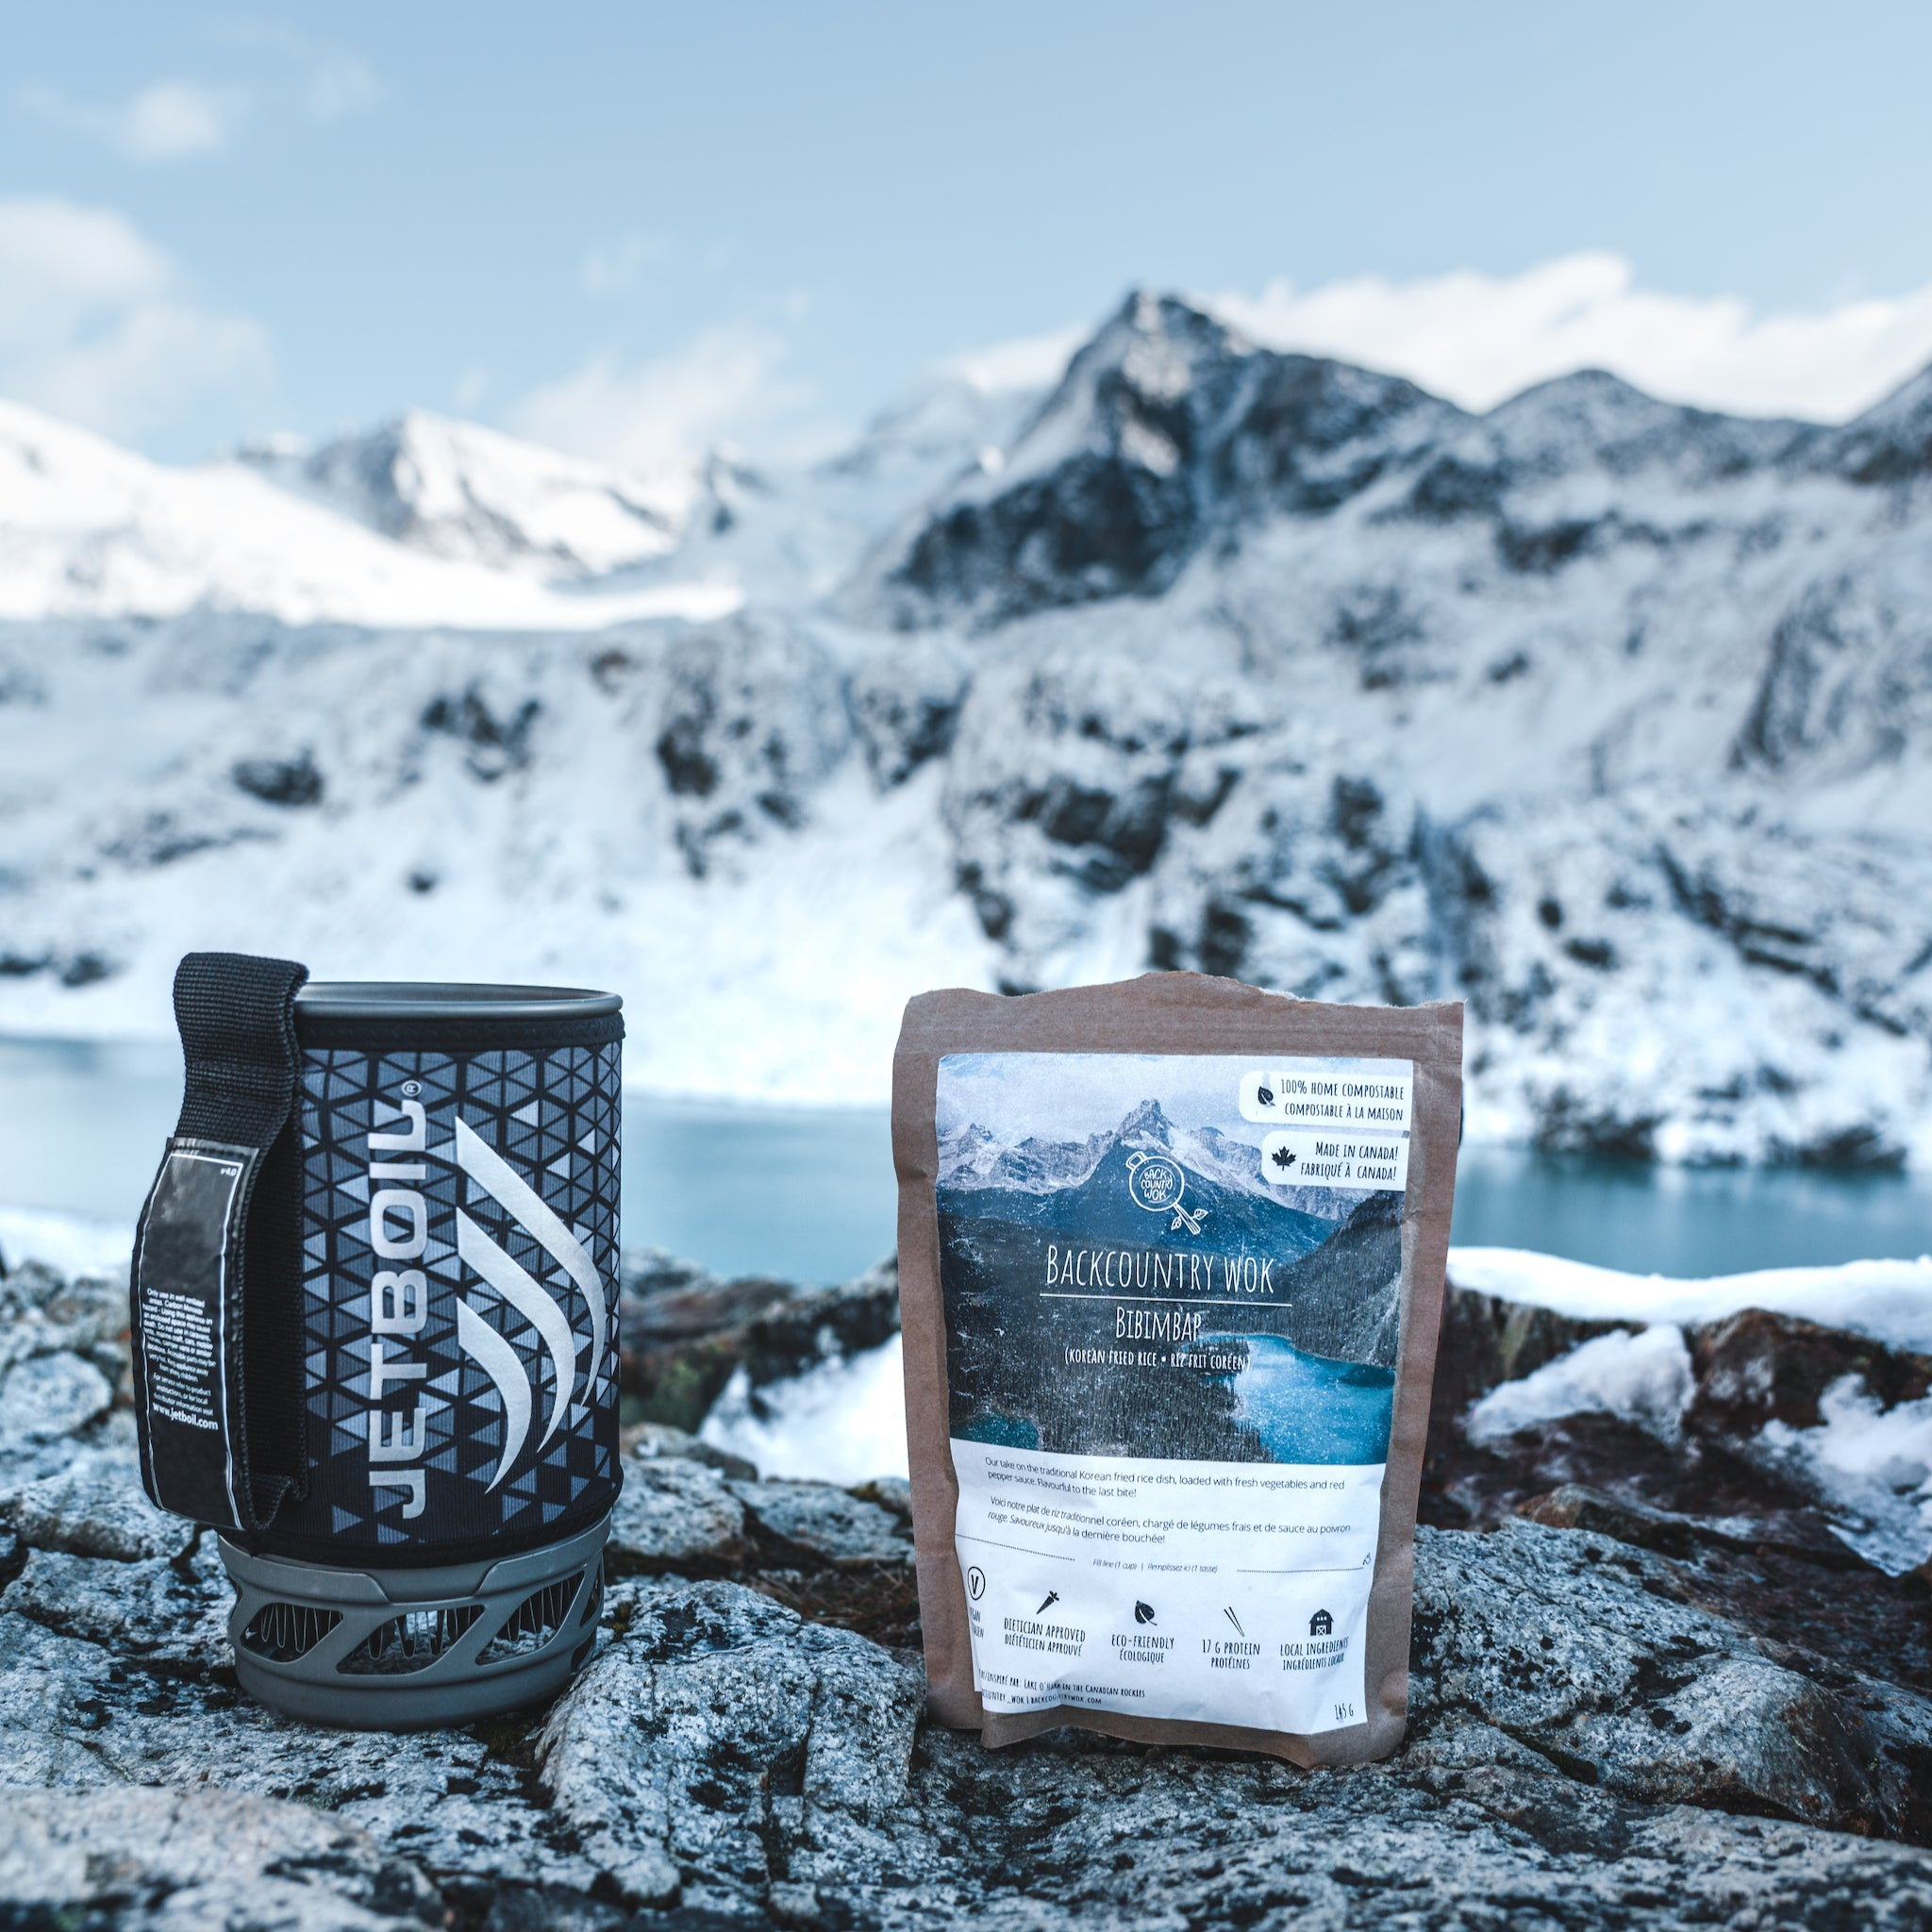 A package of Backcountry Wok's meals backdropped by snowcapped mountains.